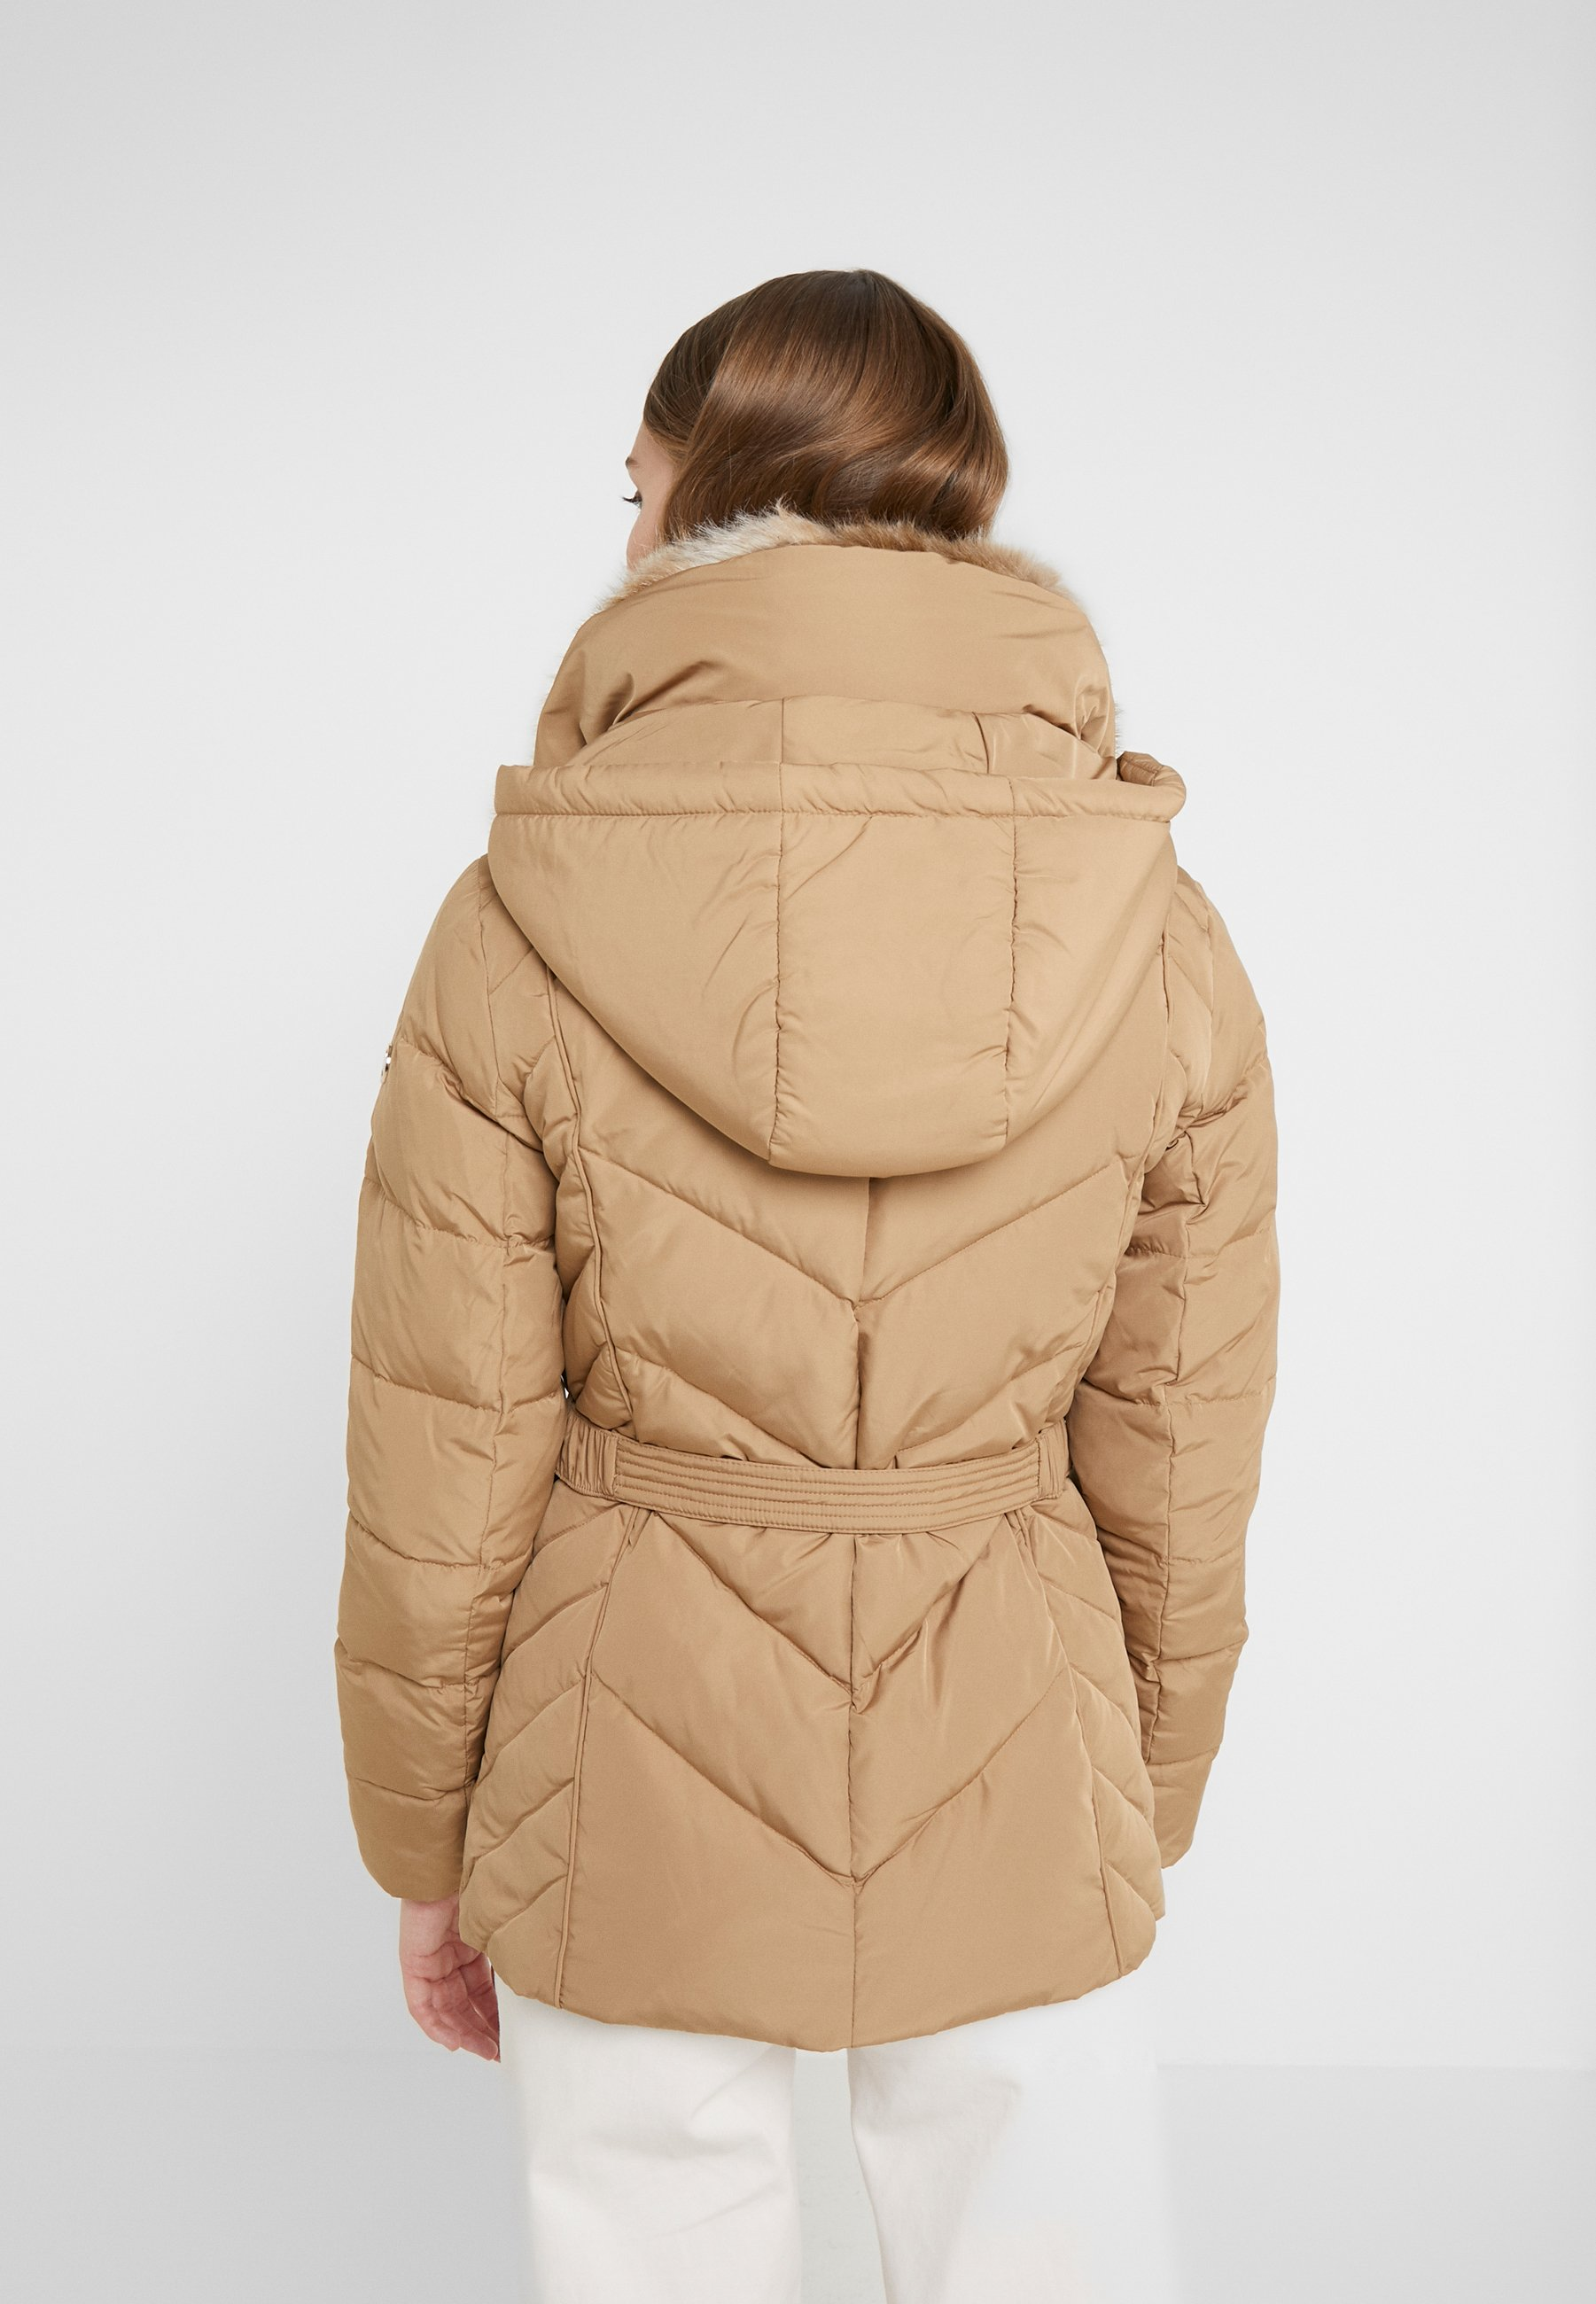 High Quality Women's Clothing MICHAEL Michael Kors FITTED PUFFER Down jacket dark camel h69715Ers